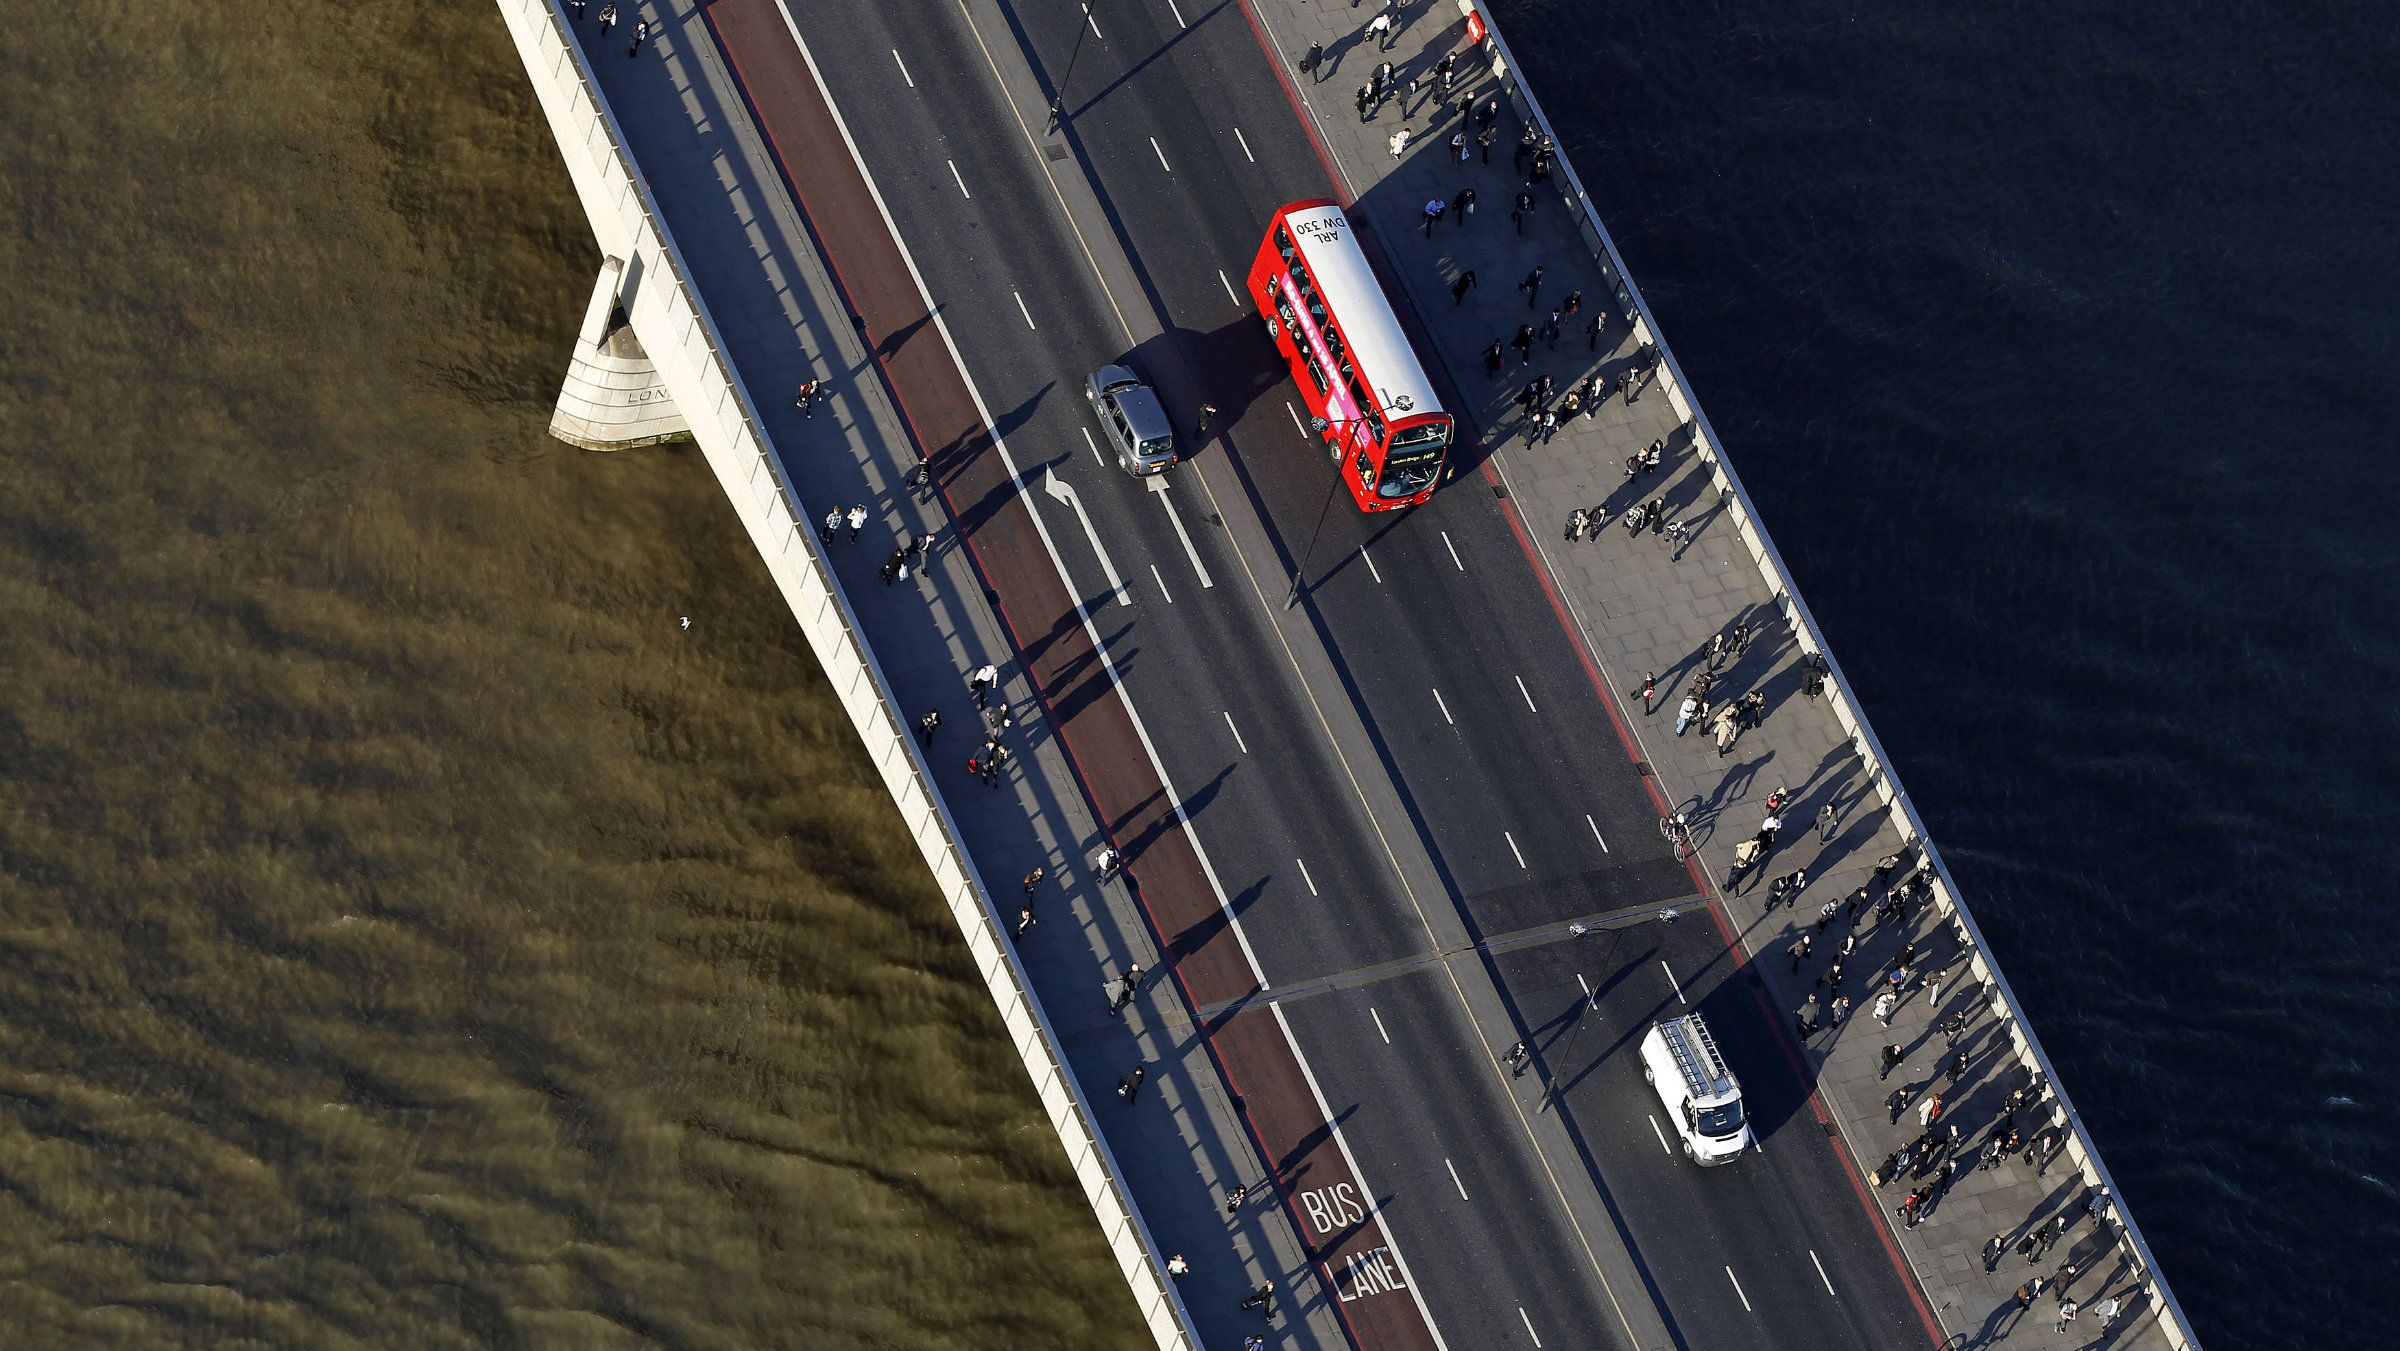 An aerial view shows a bus crossing a bridge in London, March 27, 2012.